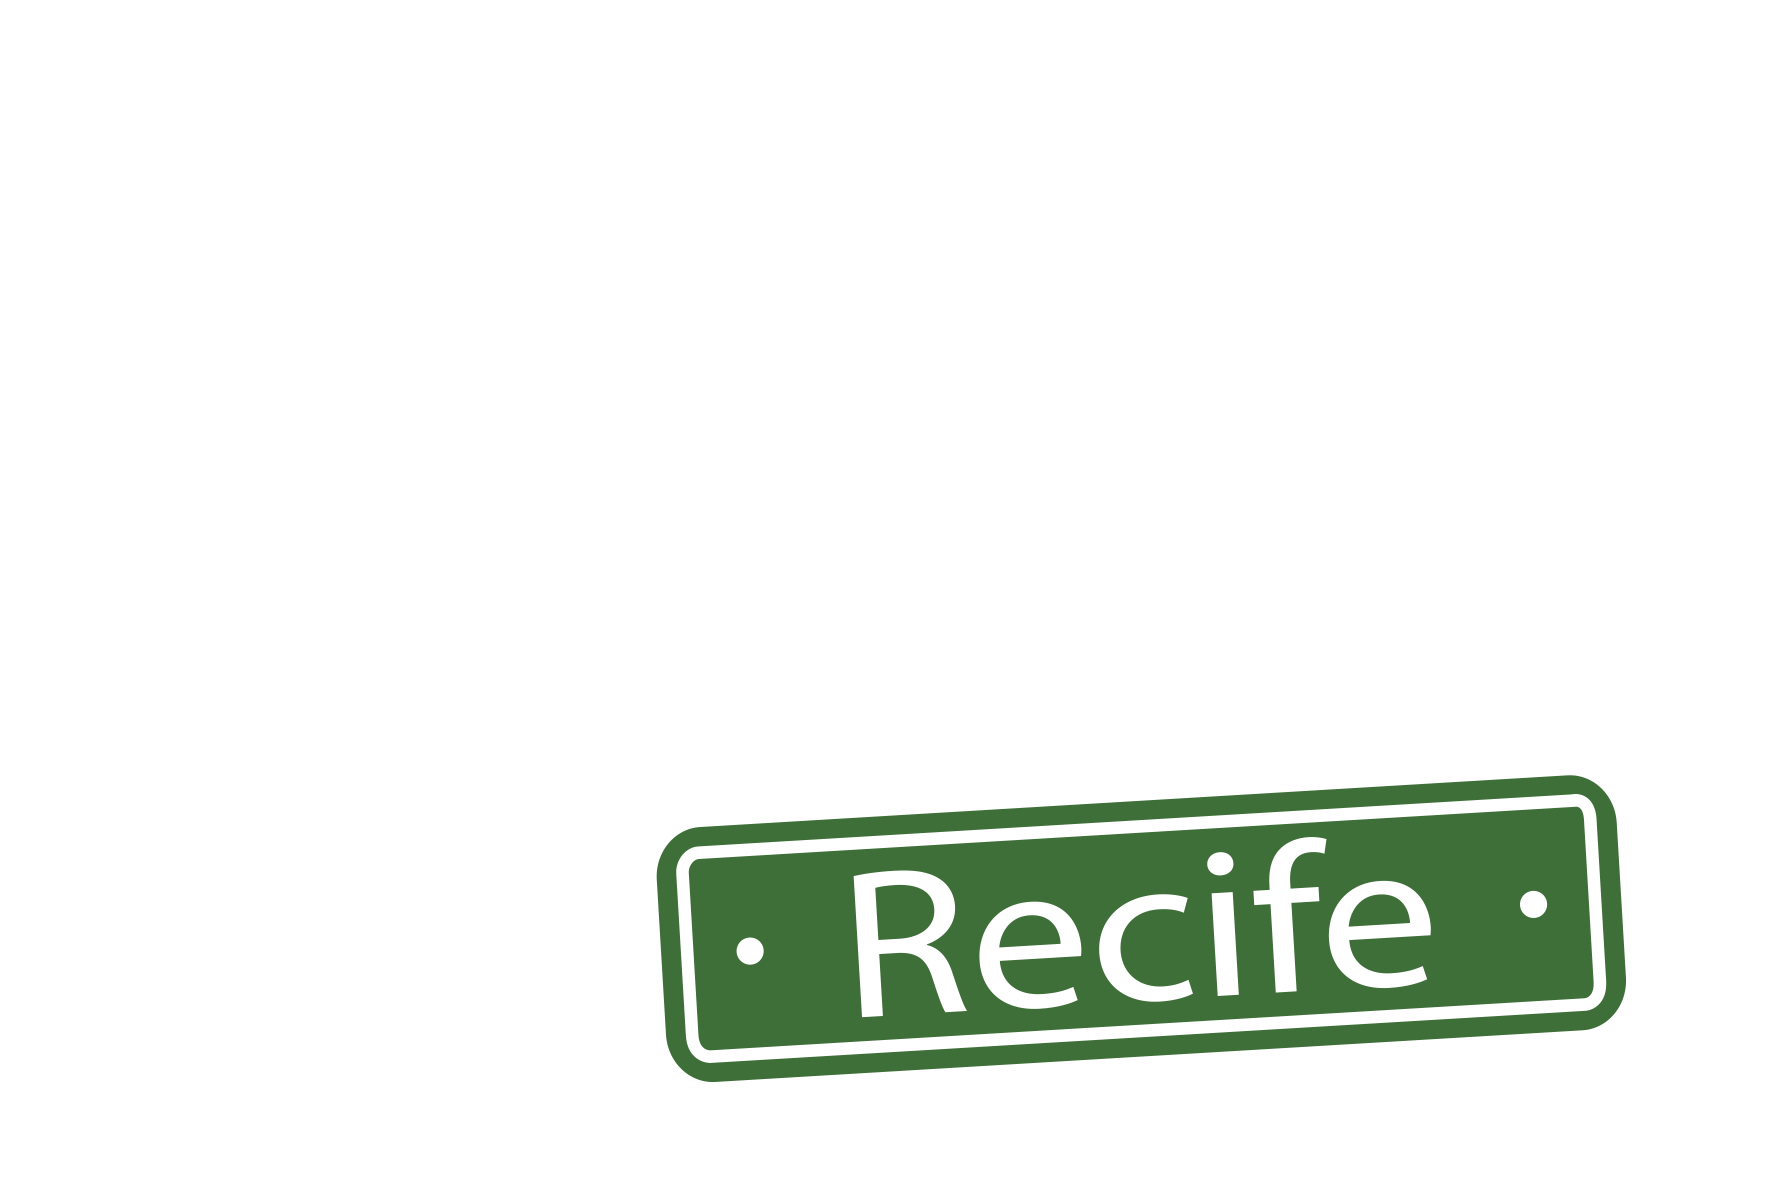 fhox on the road-recife-novo-branco